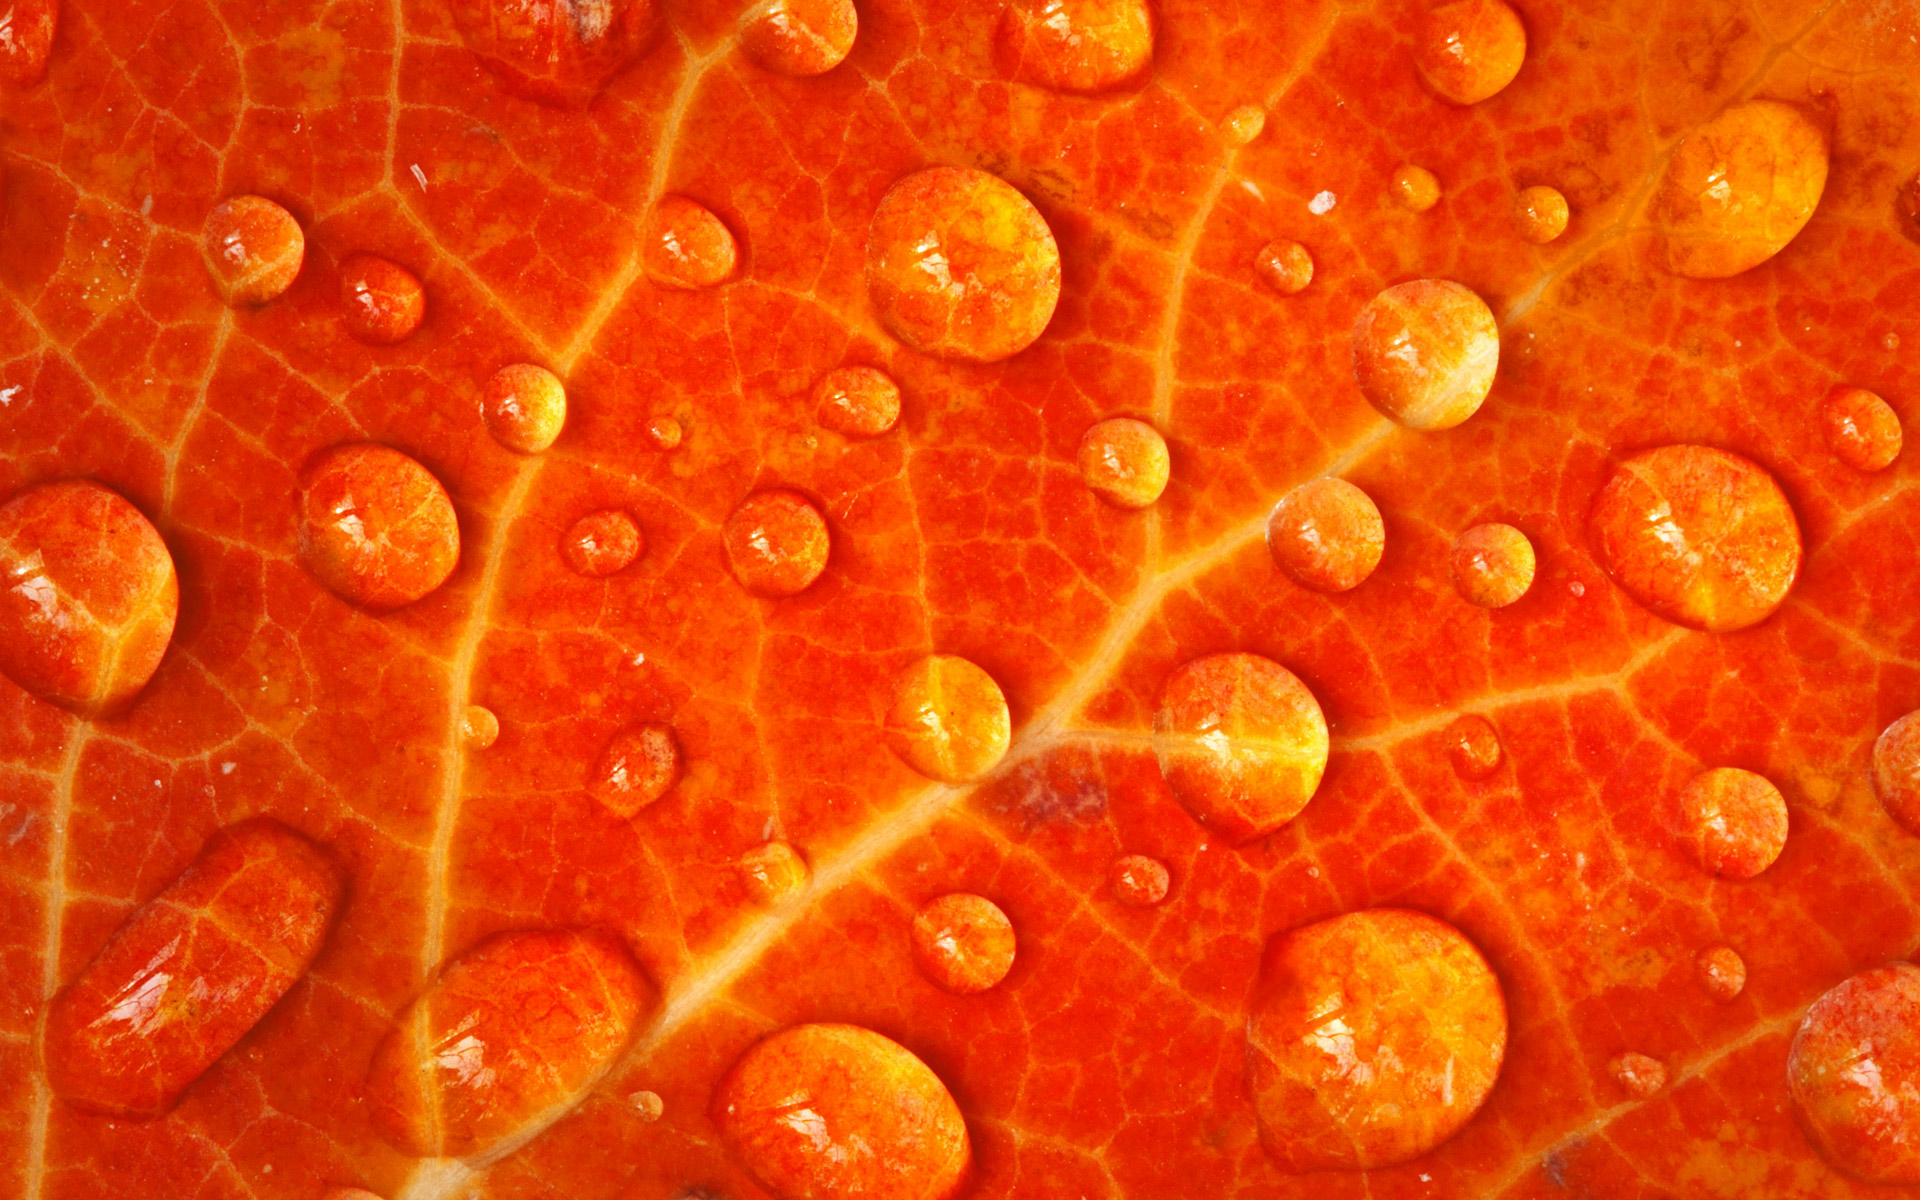 Water Drop Wallpaper For Iphone 30 Hd Orange Wallpapers